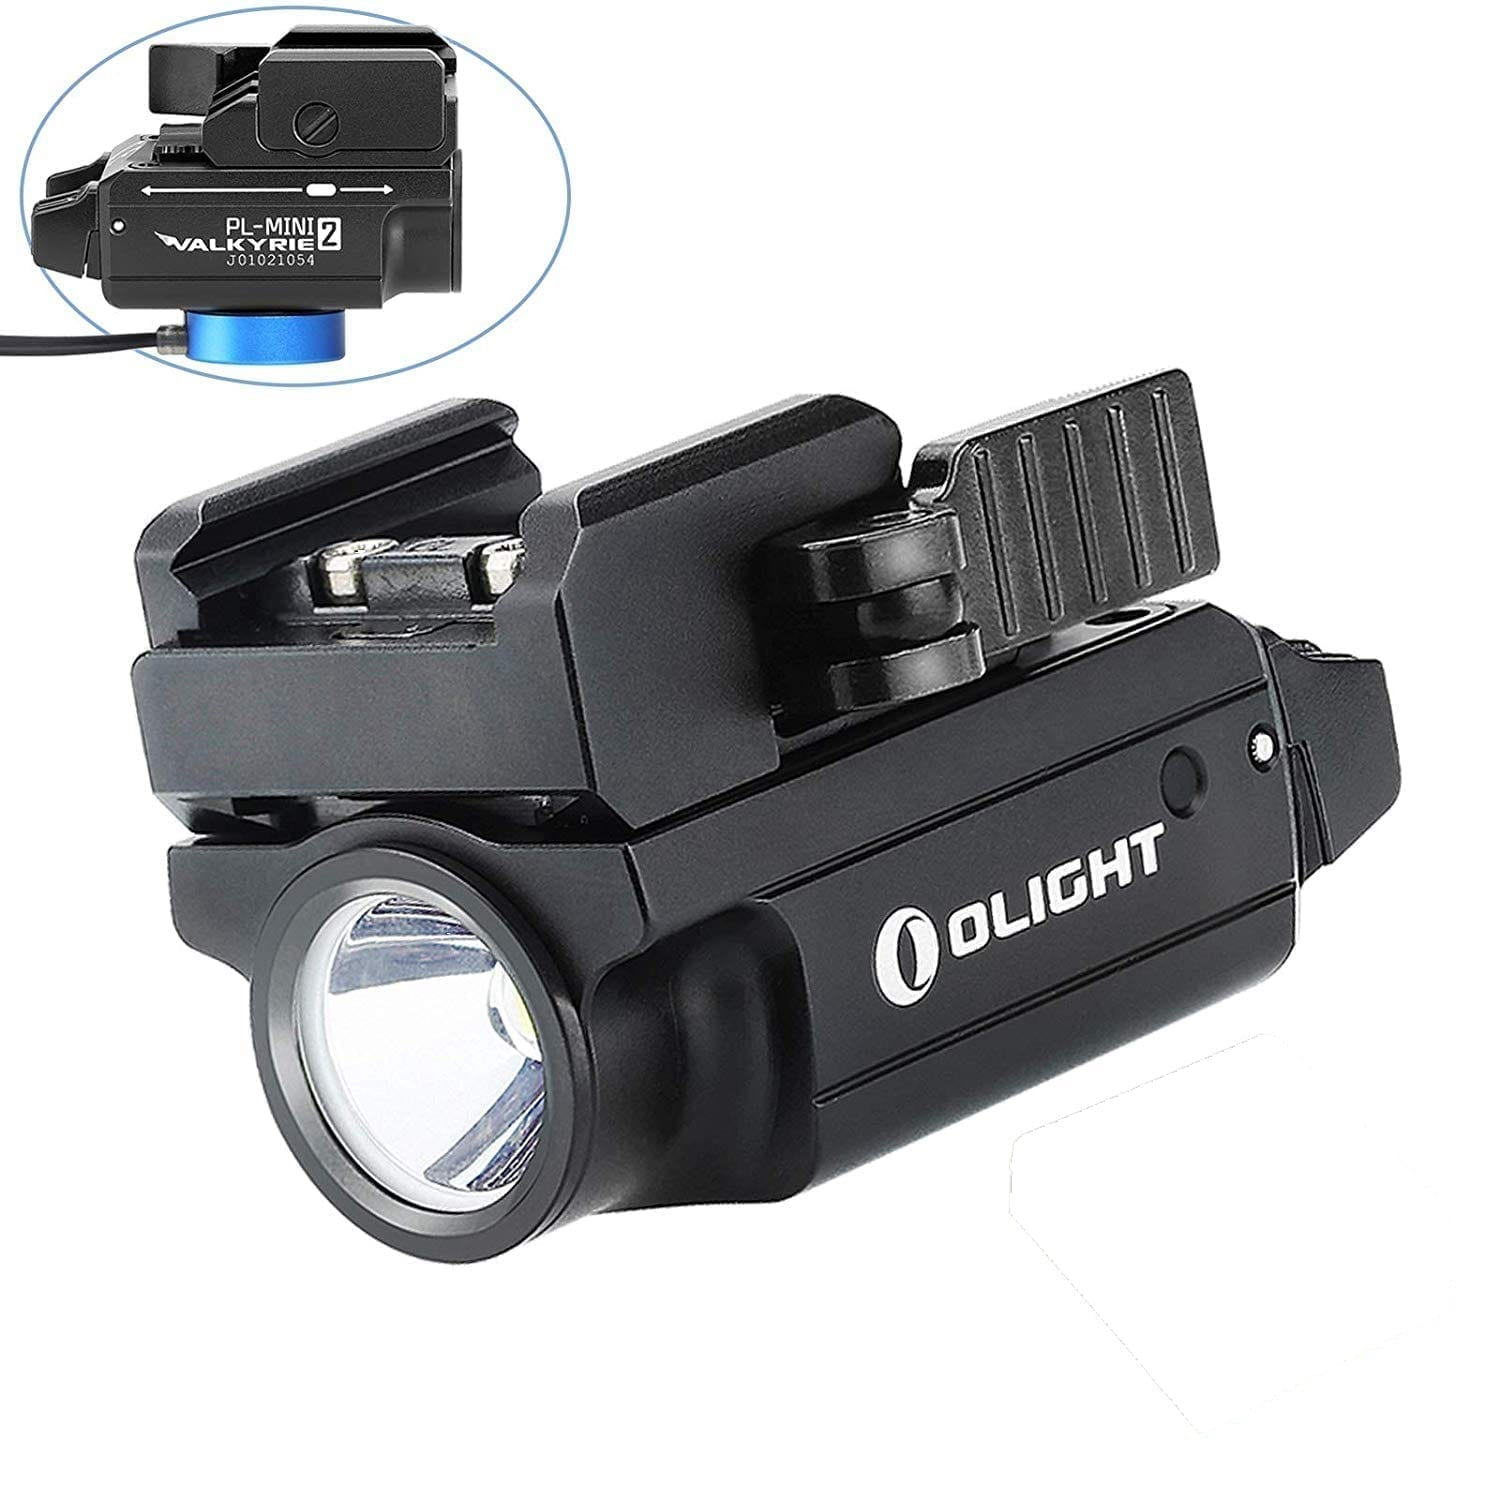 Olight PL-Mini 2 Valkyrie 600 Lumens Rechargeable Subcompact Weapon Light Black